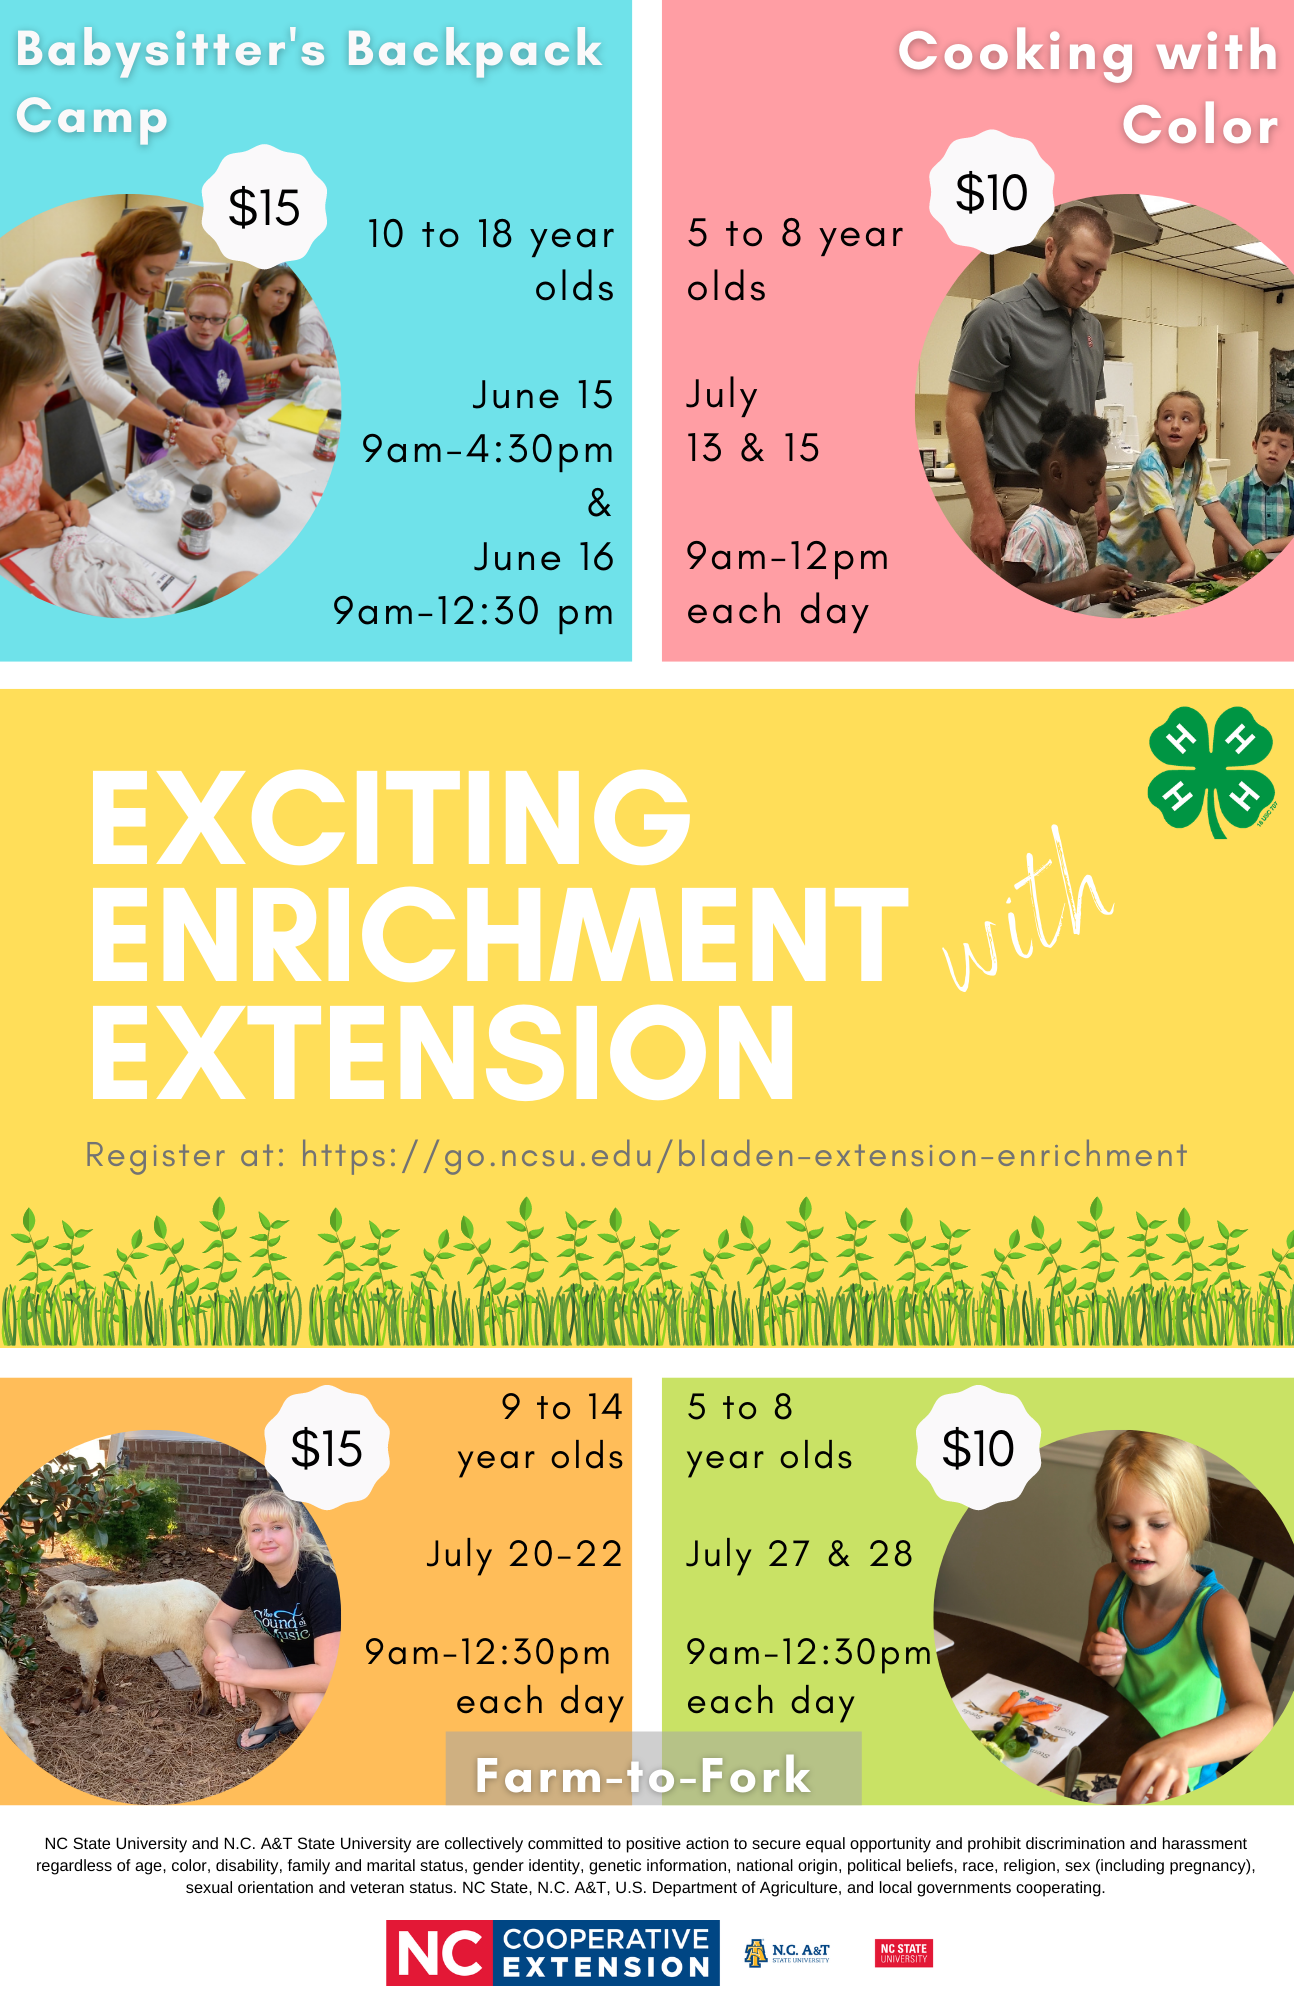 Exciting Enrichment with Extension flyer image